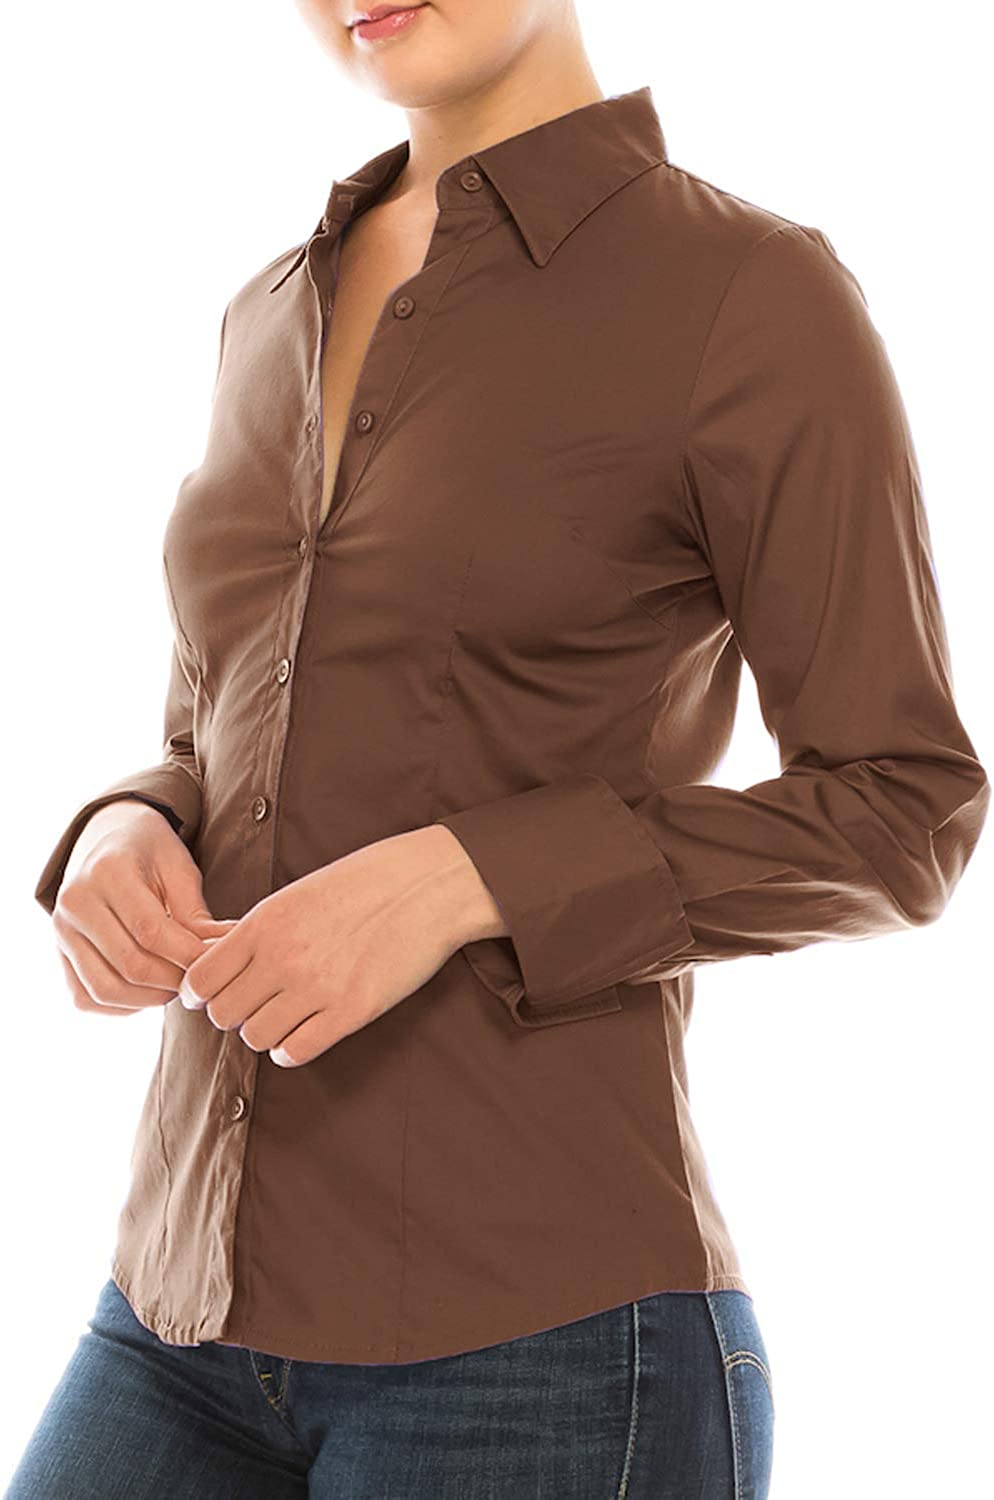 MAYSIX APPAREL Long Sleeve Stretchy Button Down Collar Office Formal Casual Shirt Blouse for Women Fit (XS-3XL)